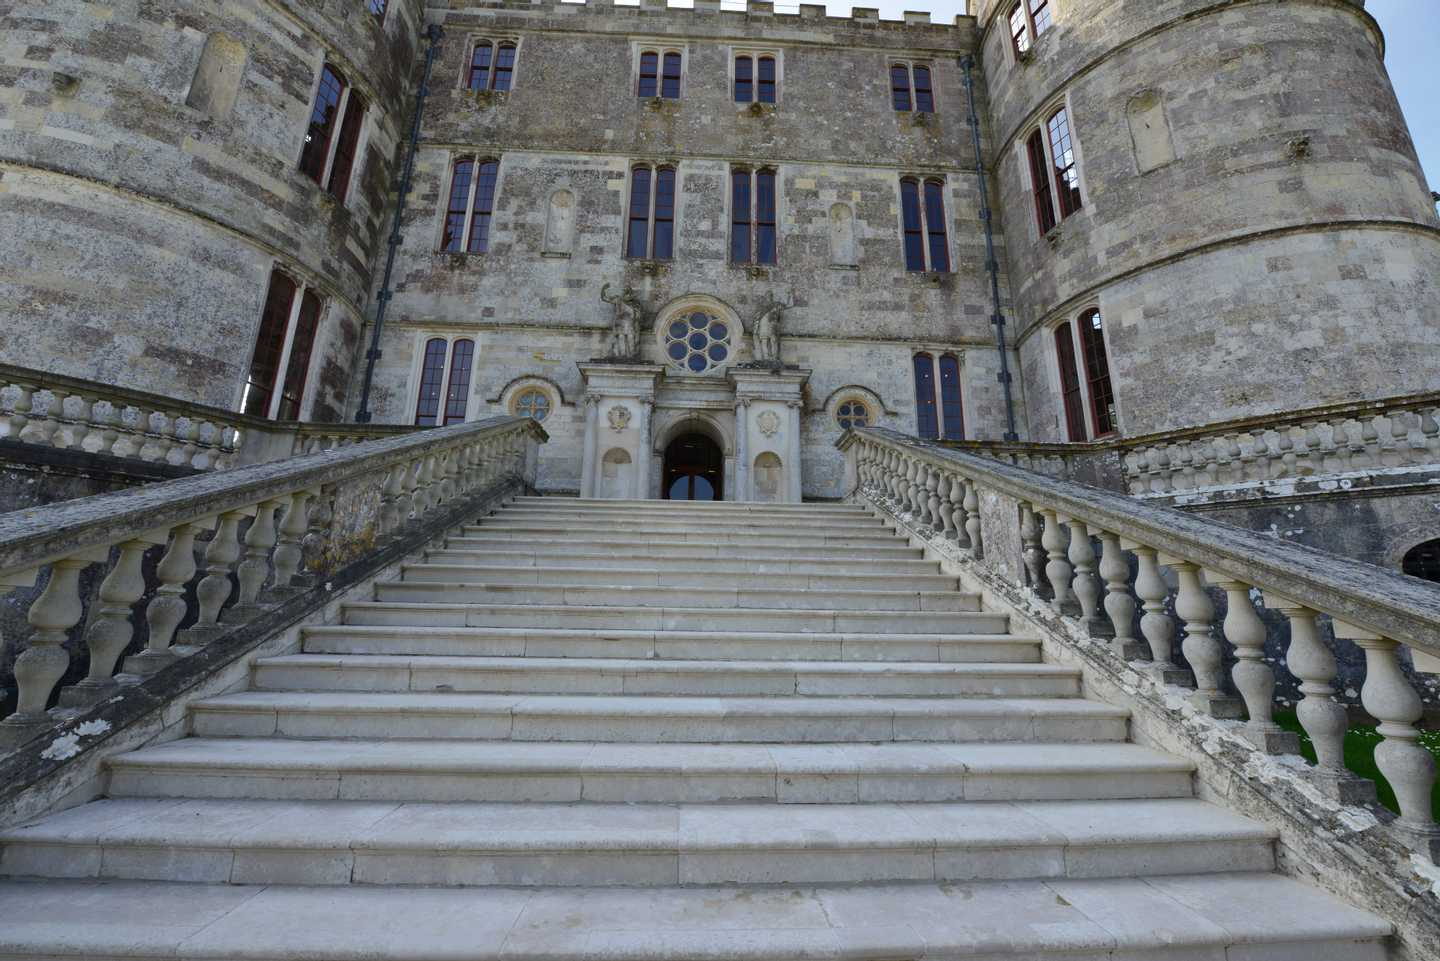 The entrance to Lulworth Castle